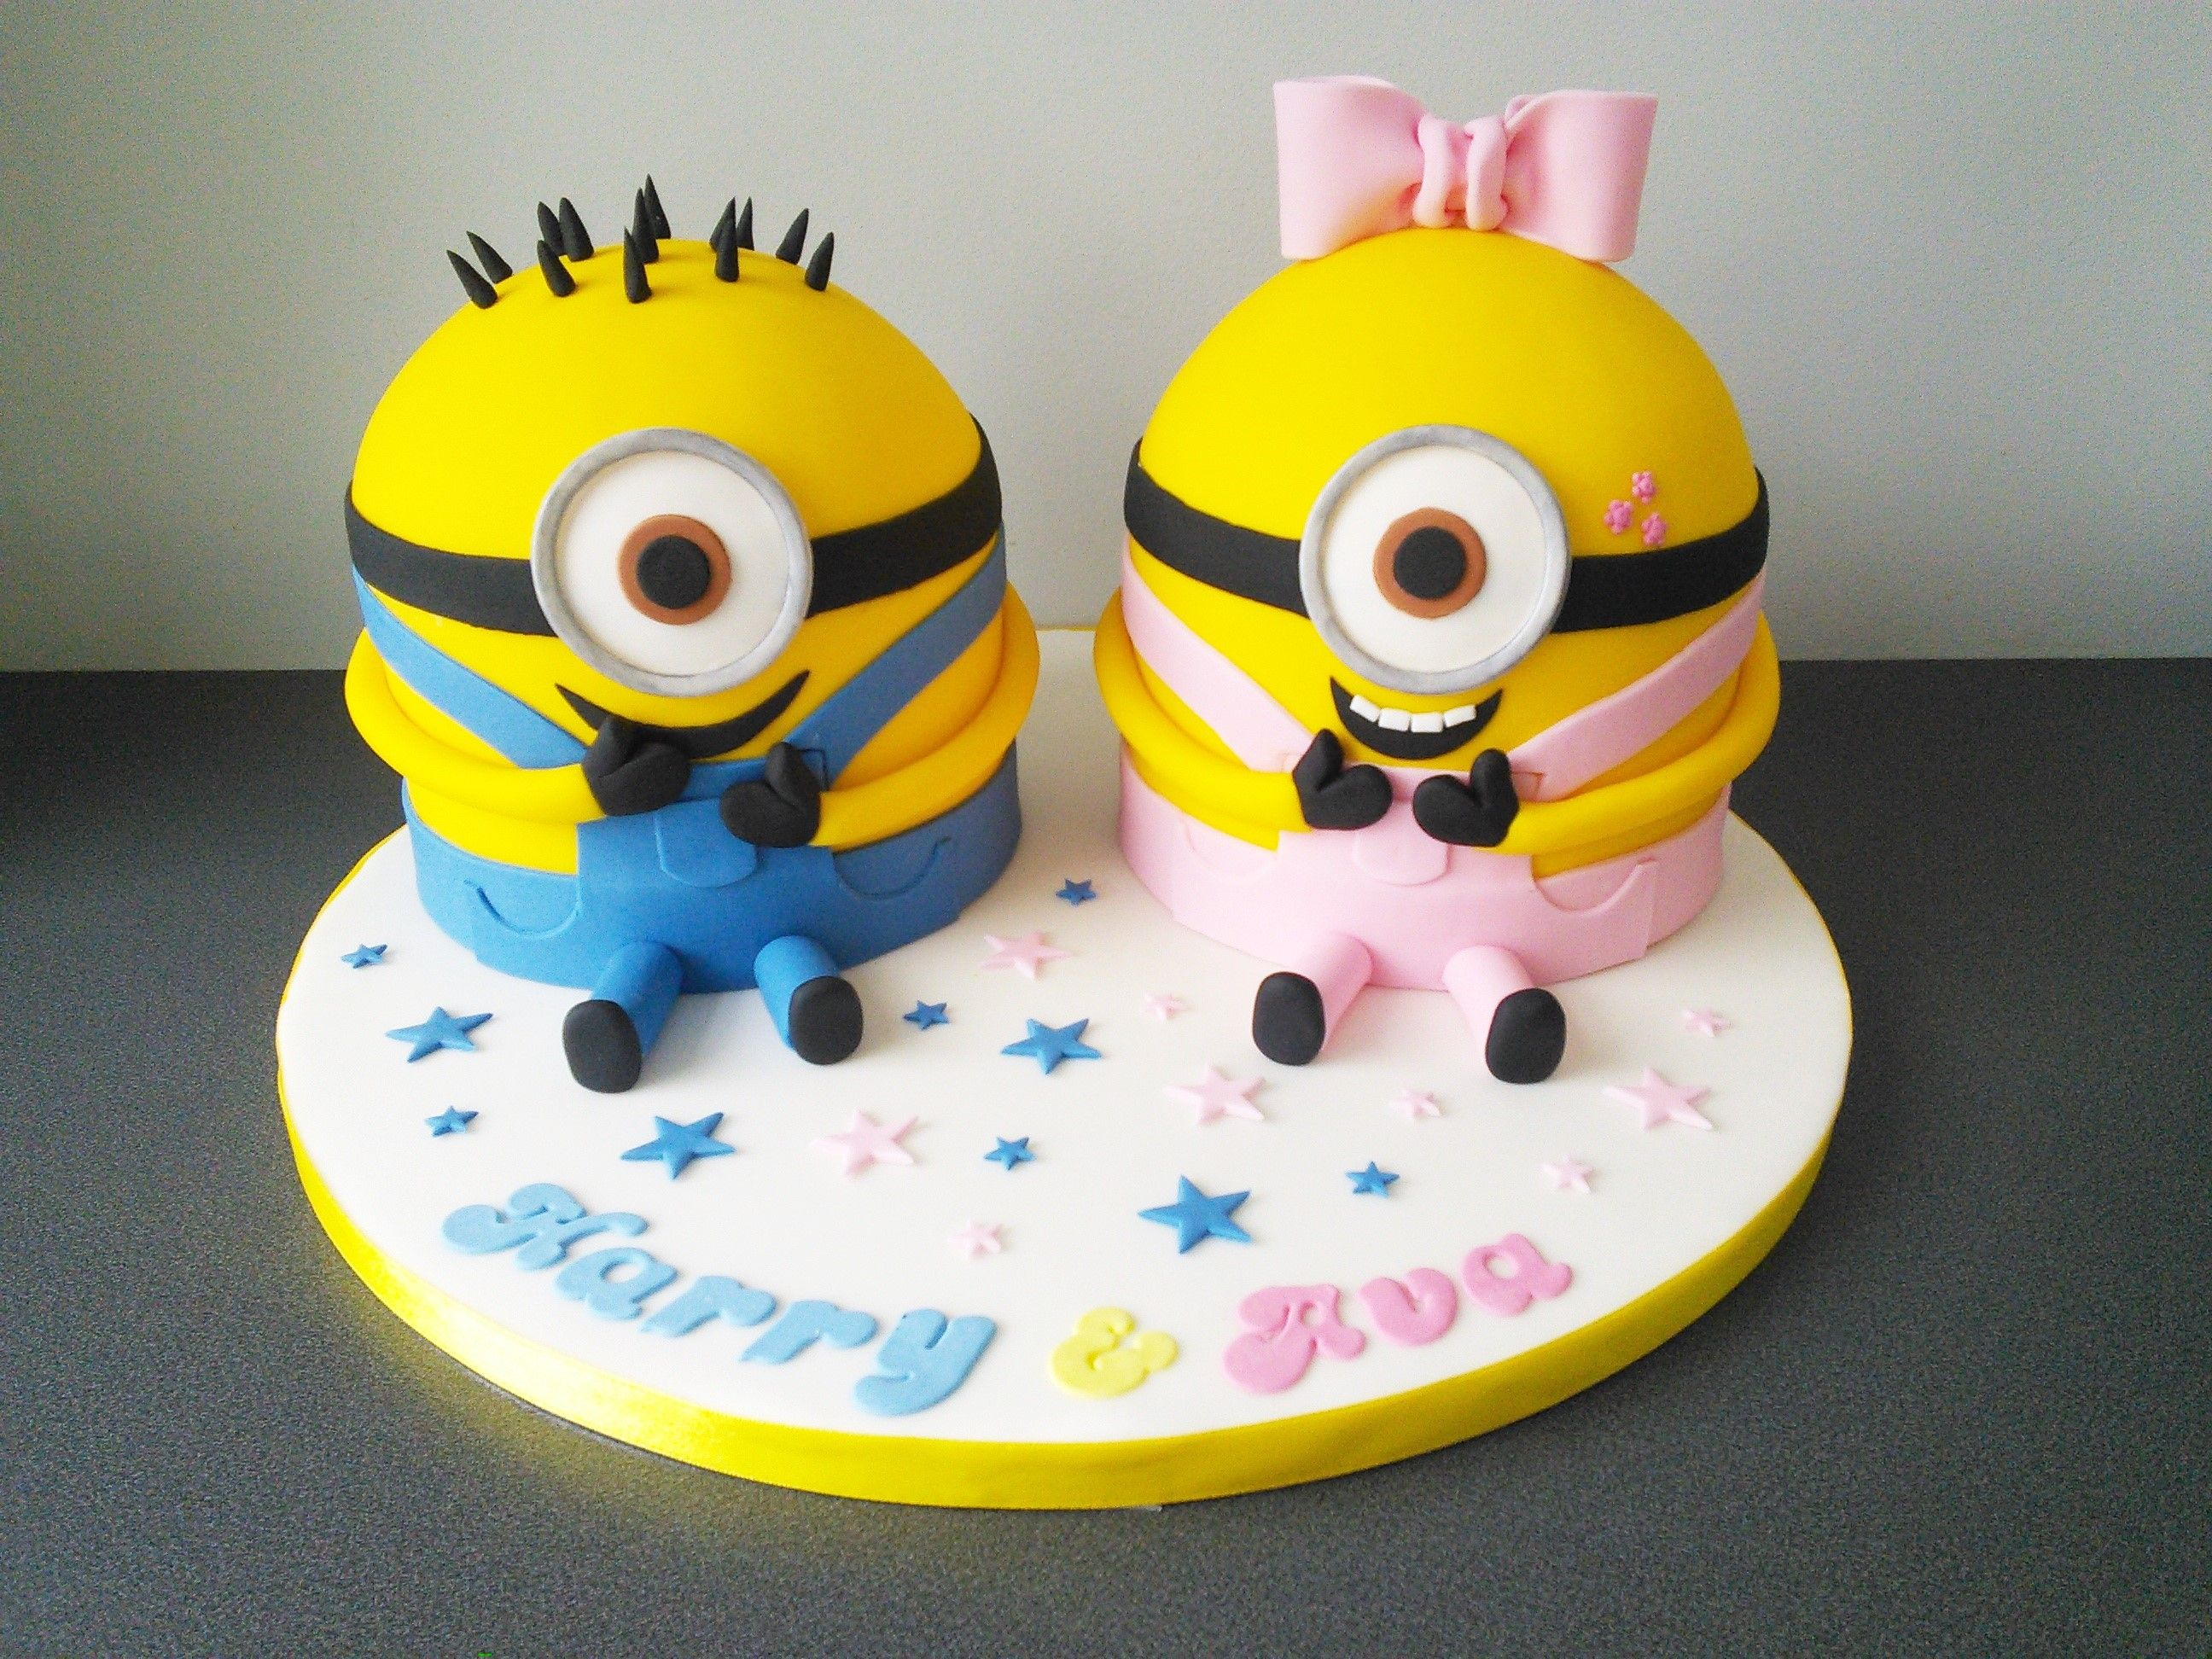 Minion cake how to car interior design - Minion Boy And Girl Joint Birthday Party Cake